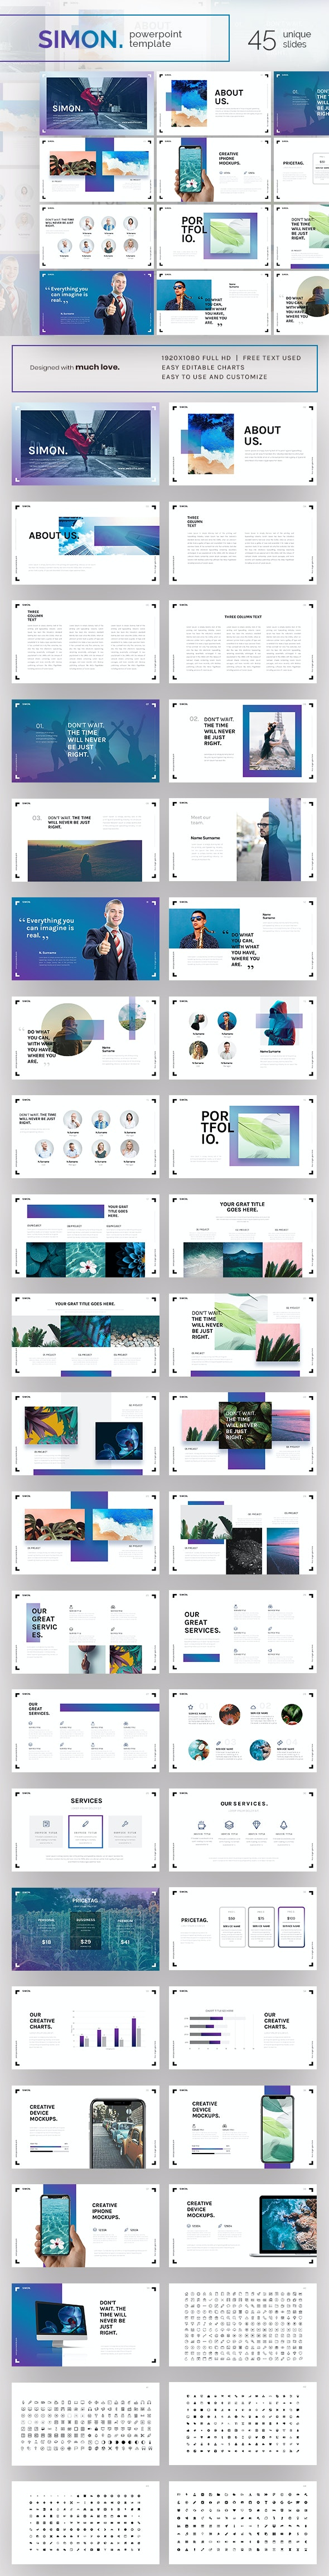 Simon Powerpoint Presentation Template - PowerPoint Templates Presentation Templates